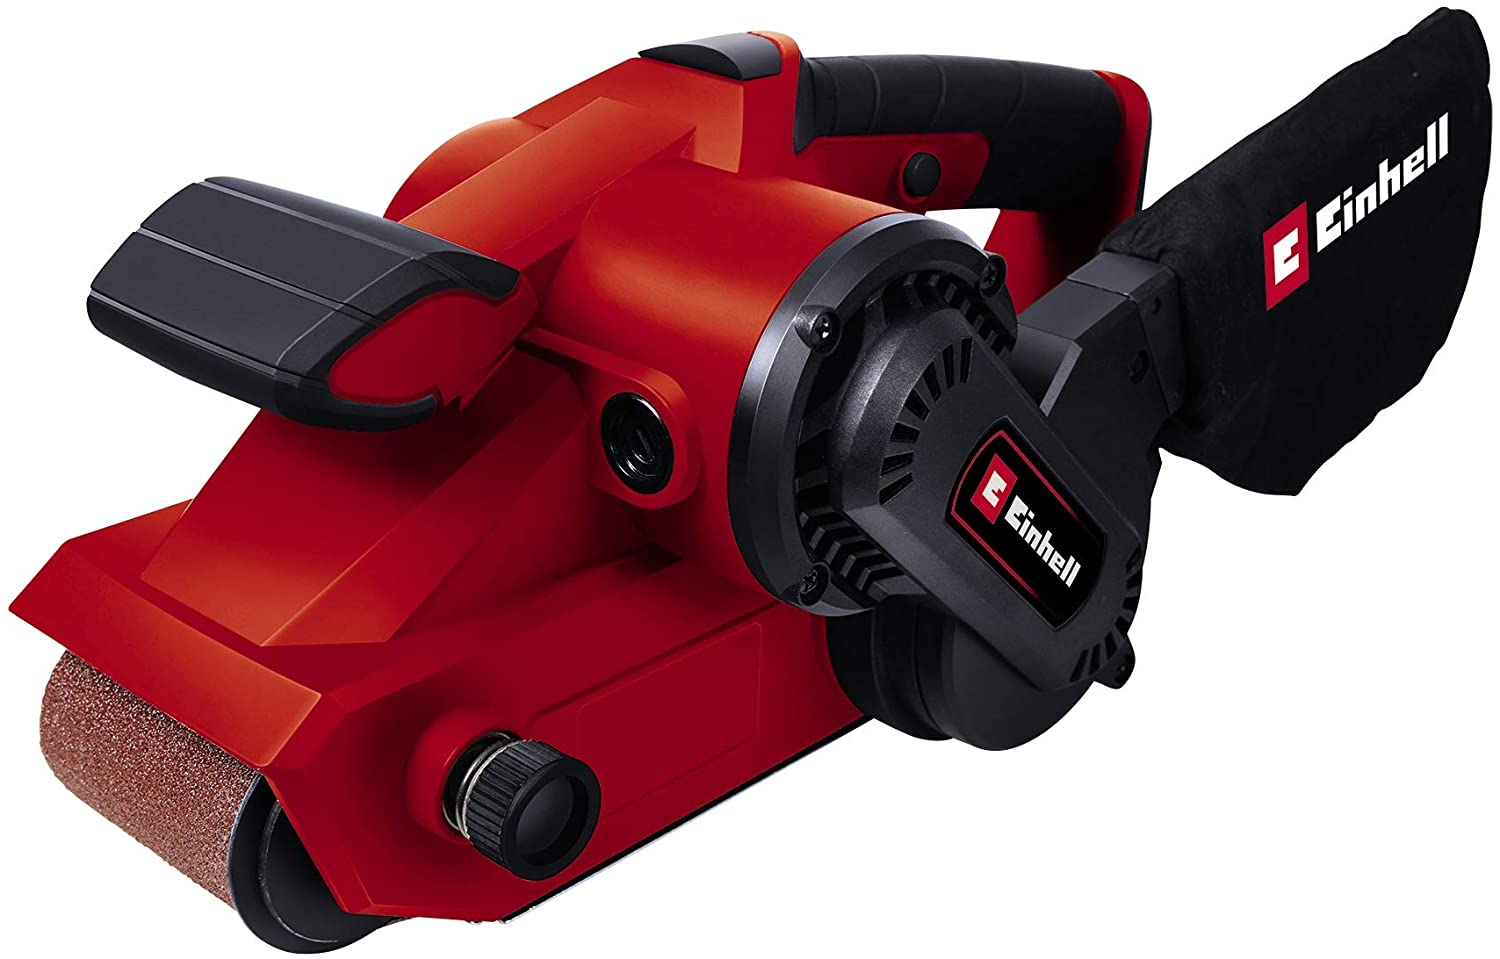 Einhell TC-BC 8038 800 W Belt Sander with Electronic Speed Control Complete with Dust Bag